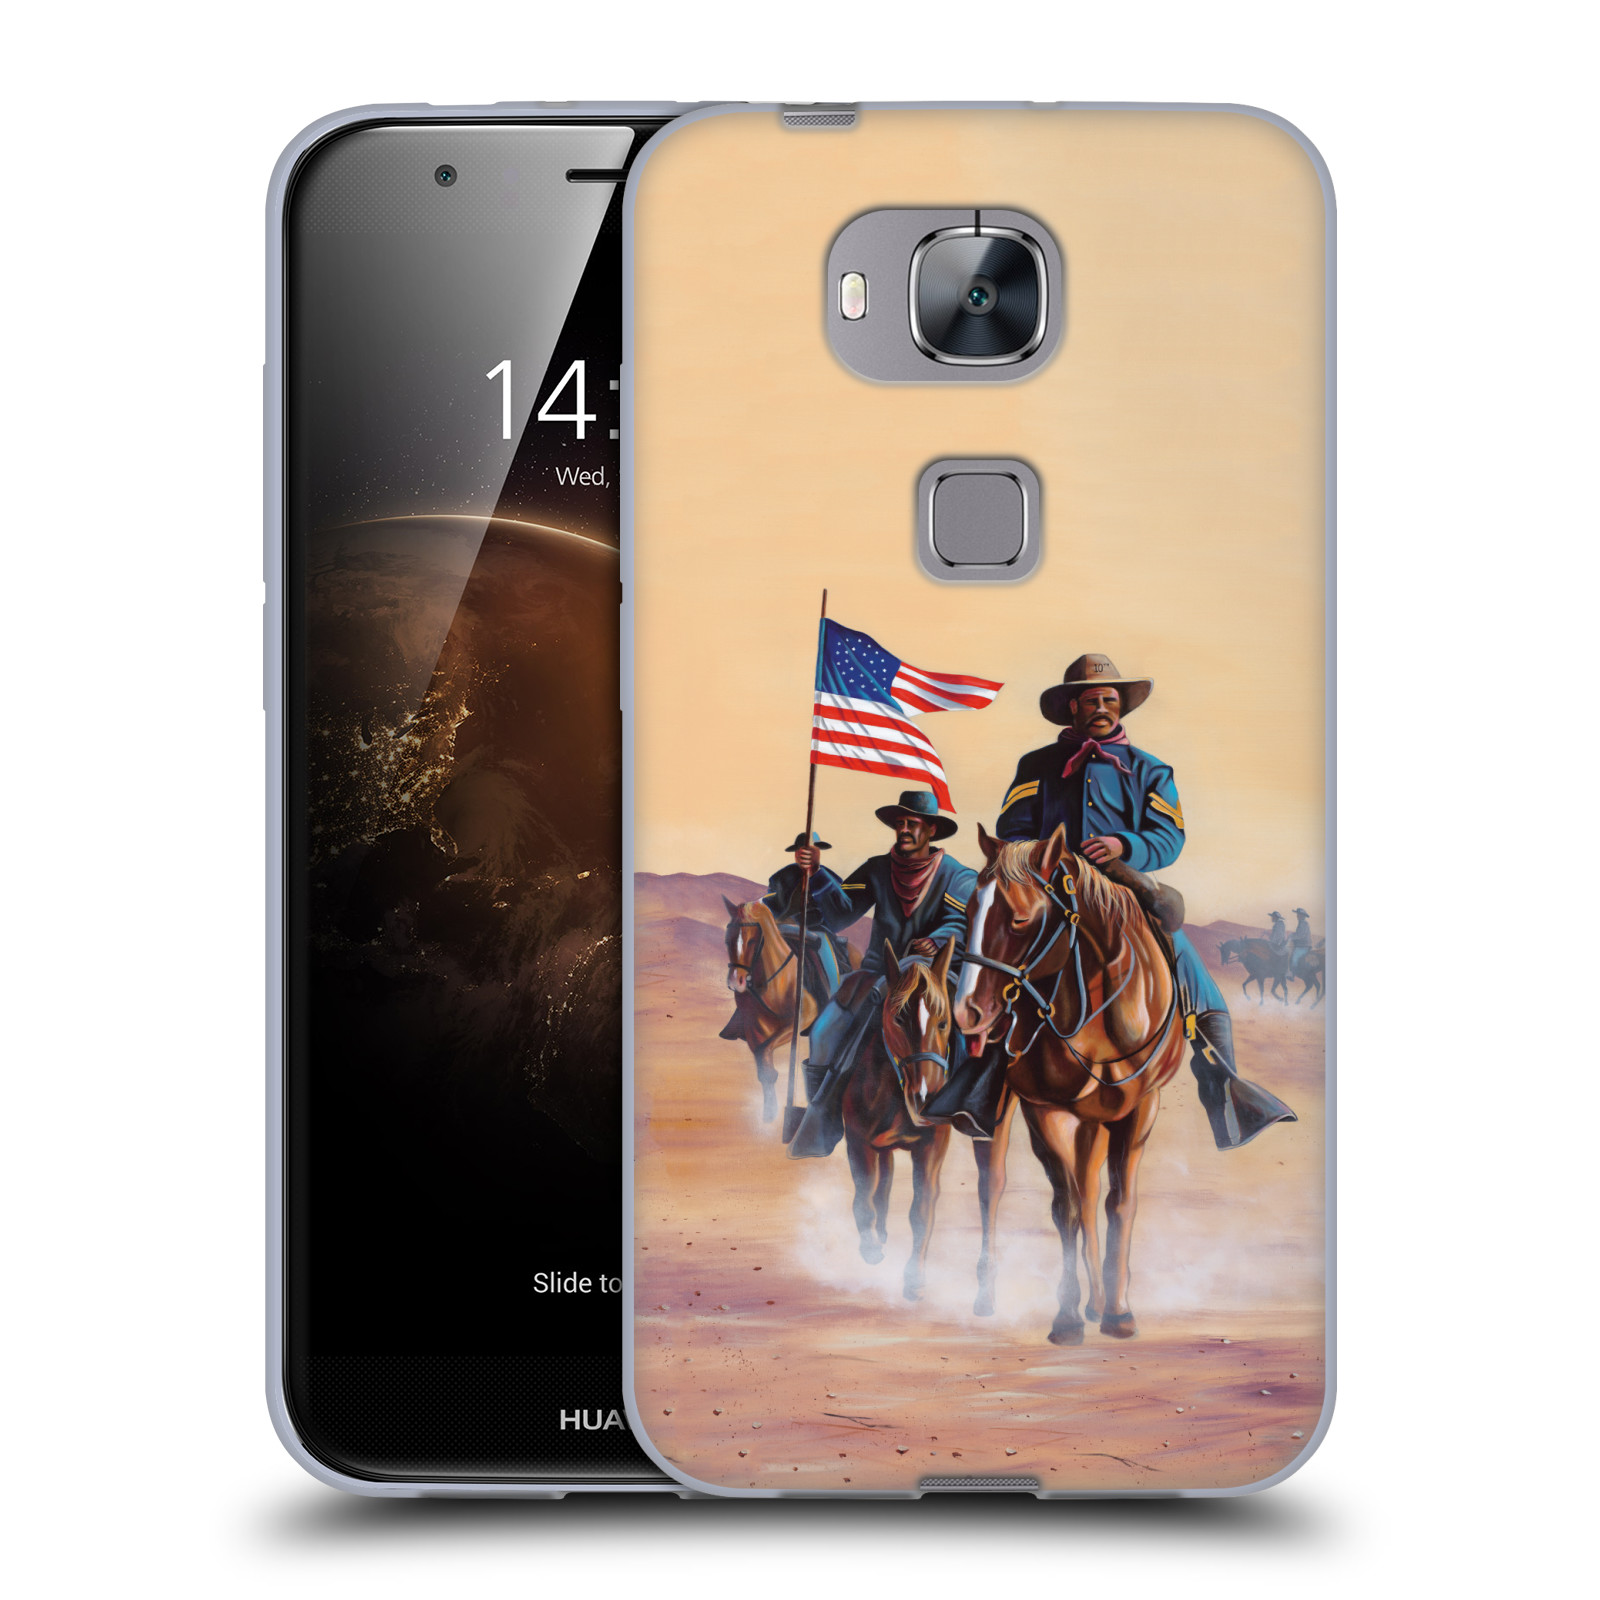 OFFICIAL-GENO-PEOPLES-ART-LIFE-SOFT-GEL-CASE-FOR-HUAWEI-PHONES-2